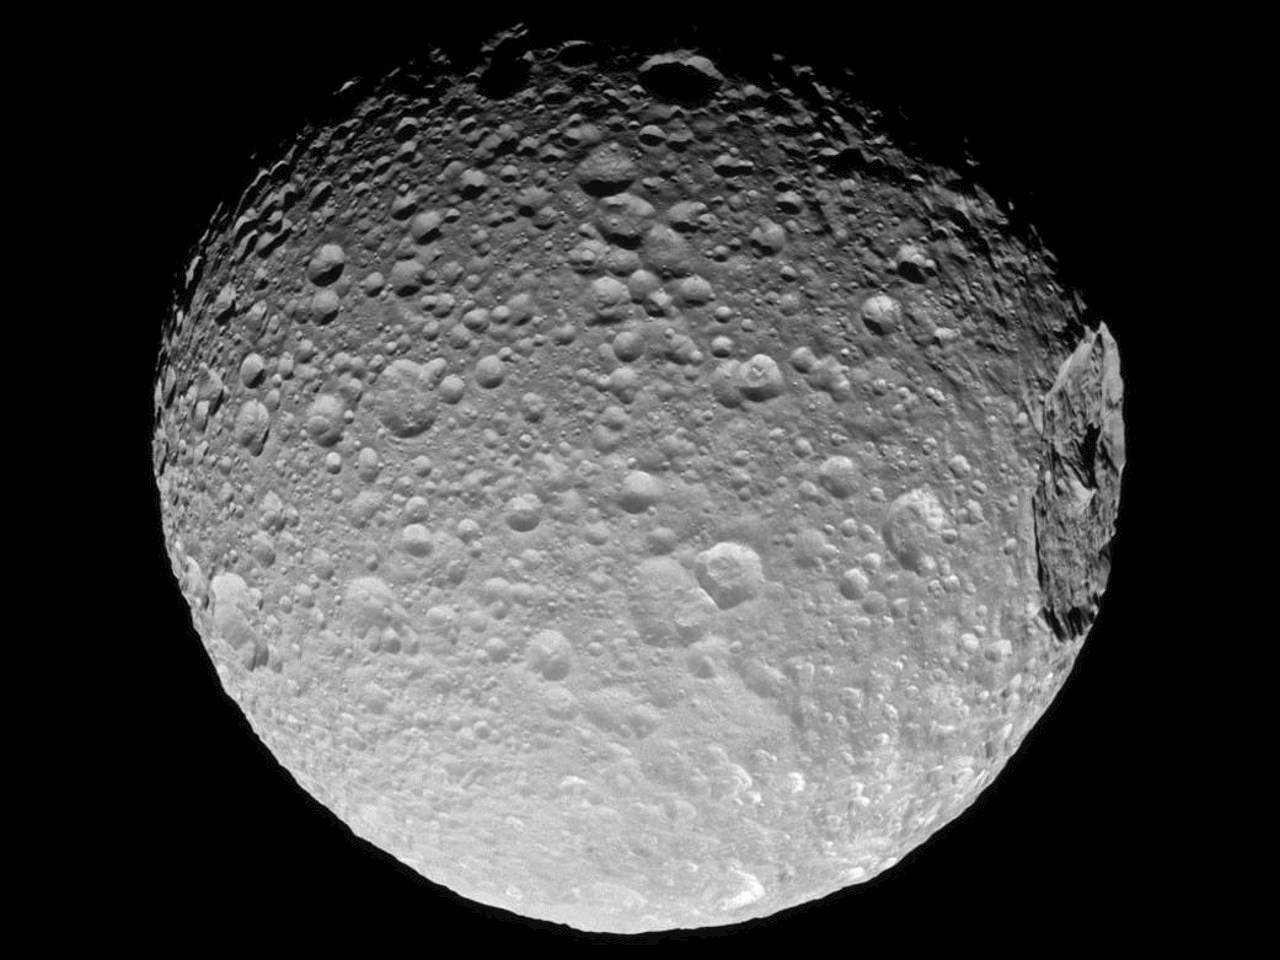 Mimas' gigantic crater Herschel lies near the moon's limb in this Cassini view